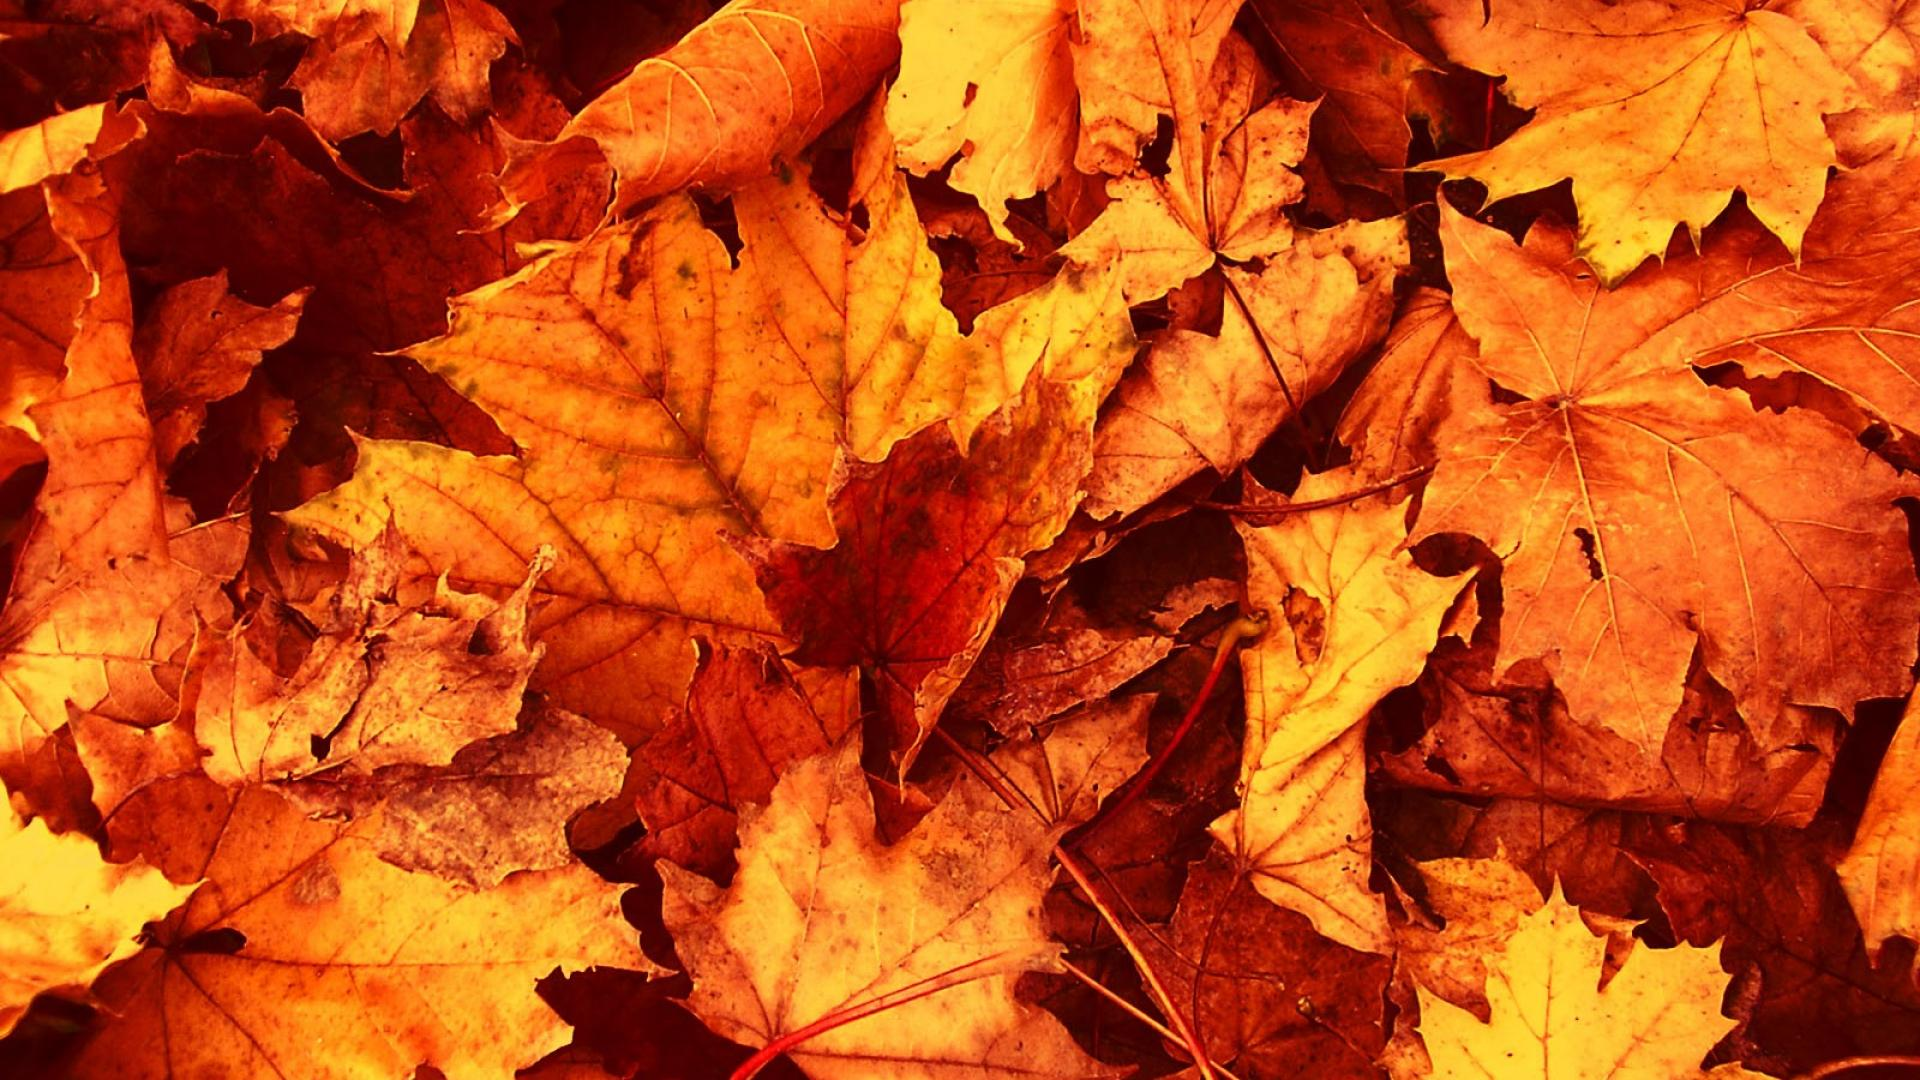 Dried autumn leaves wallpaper | (132870)